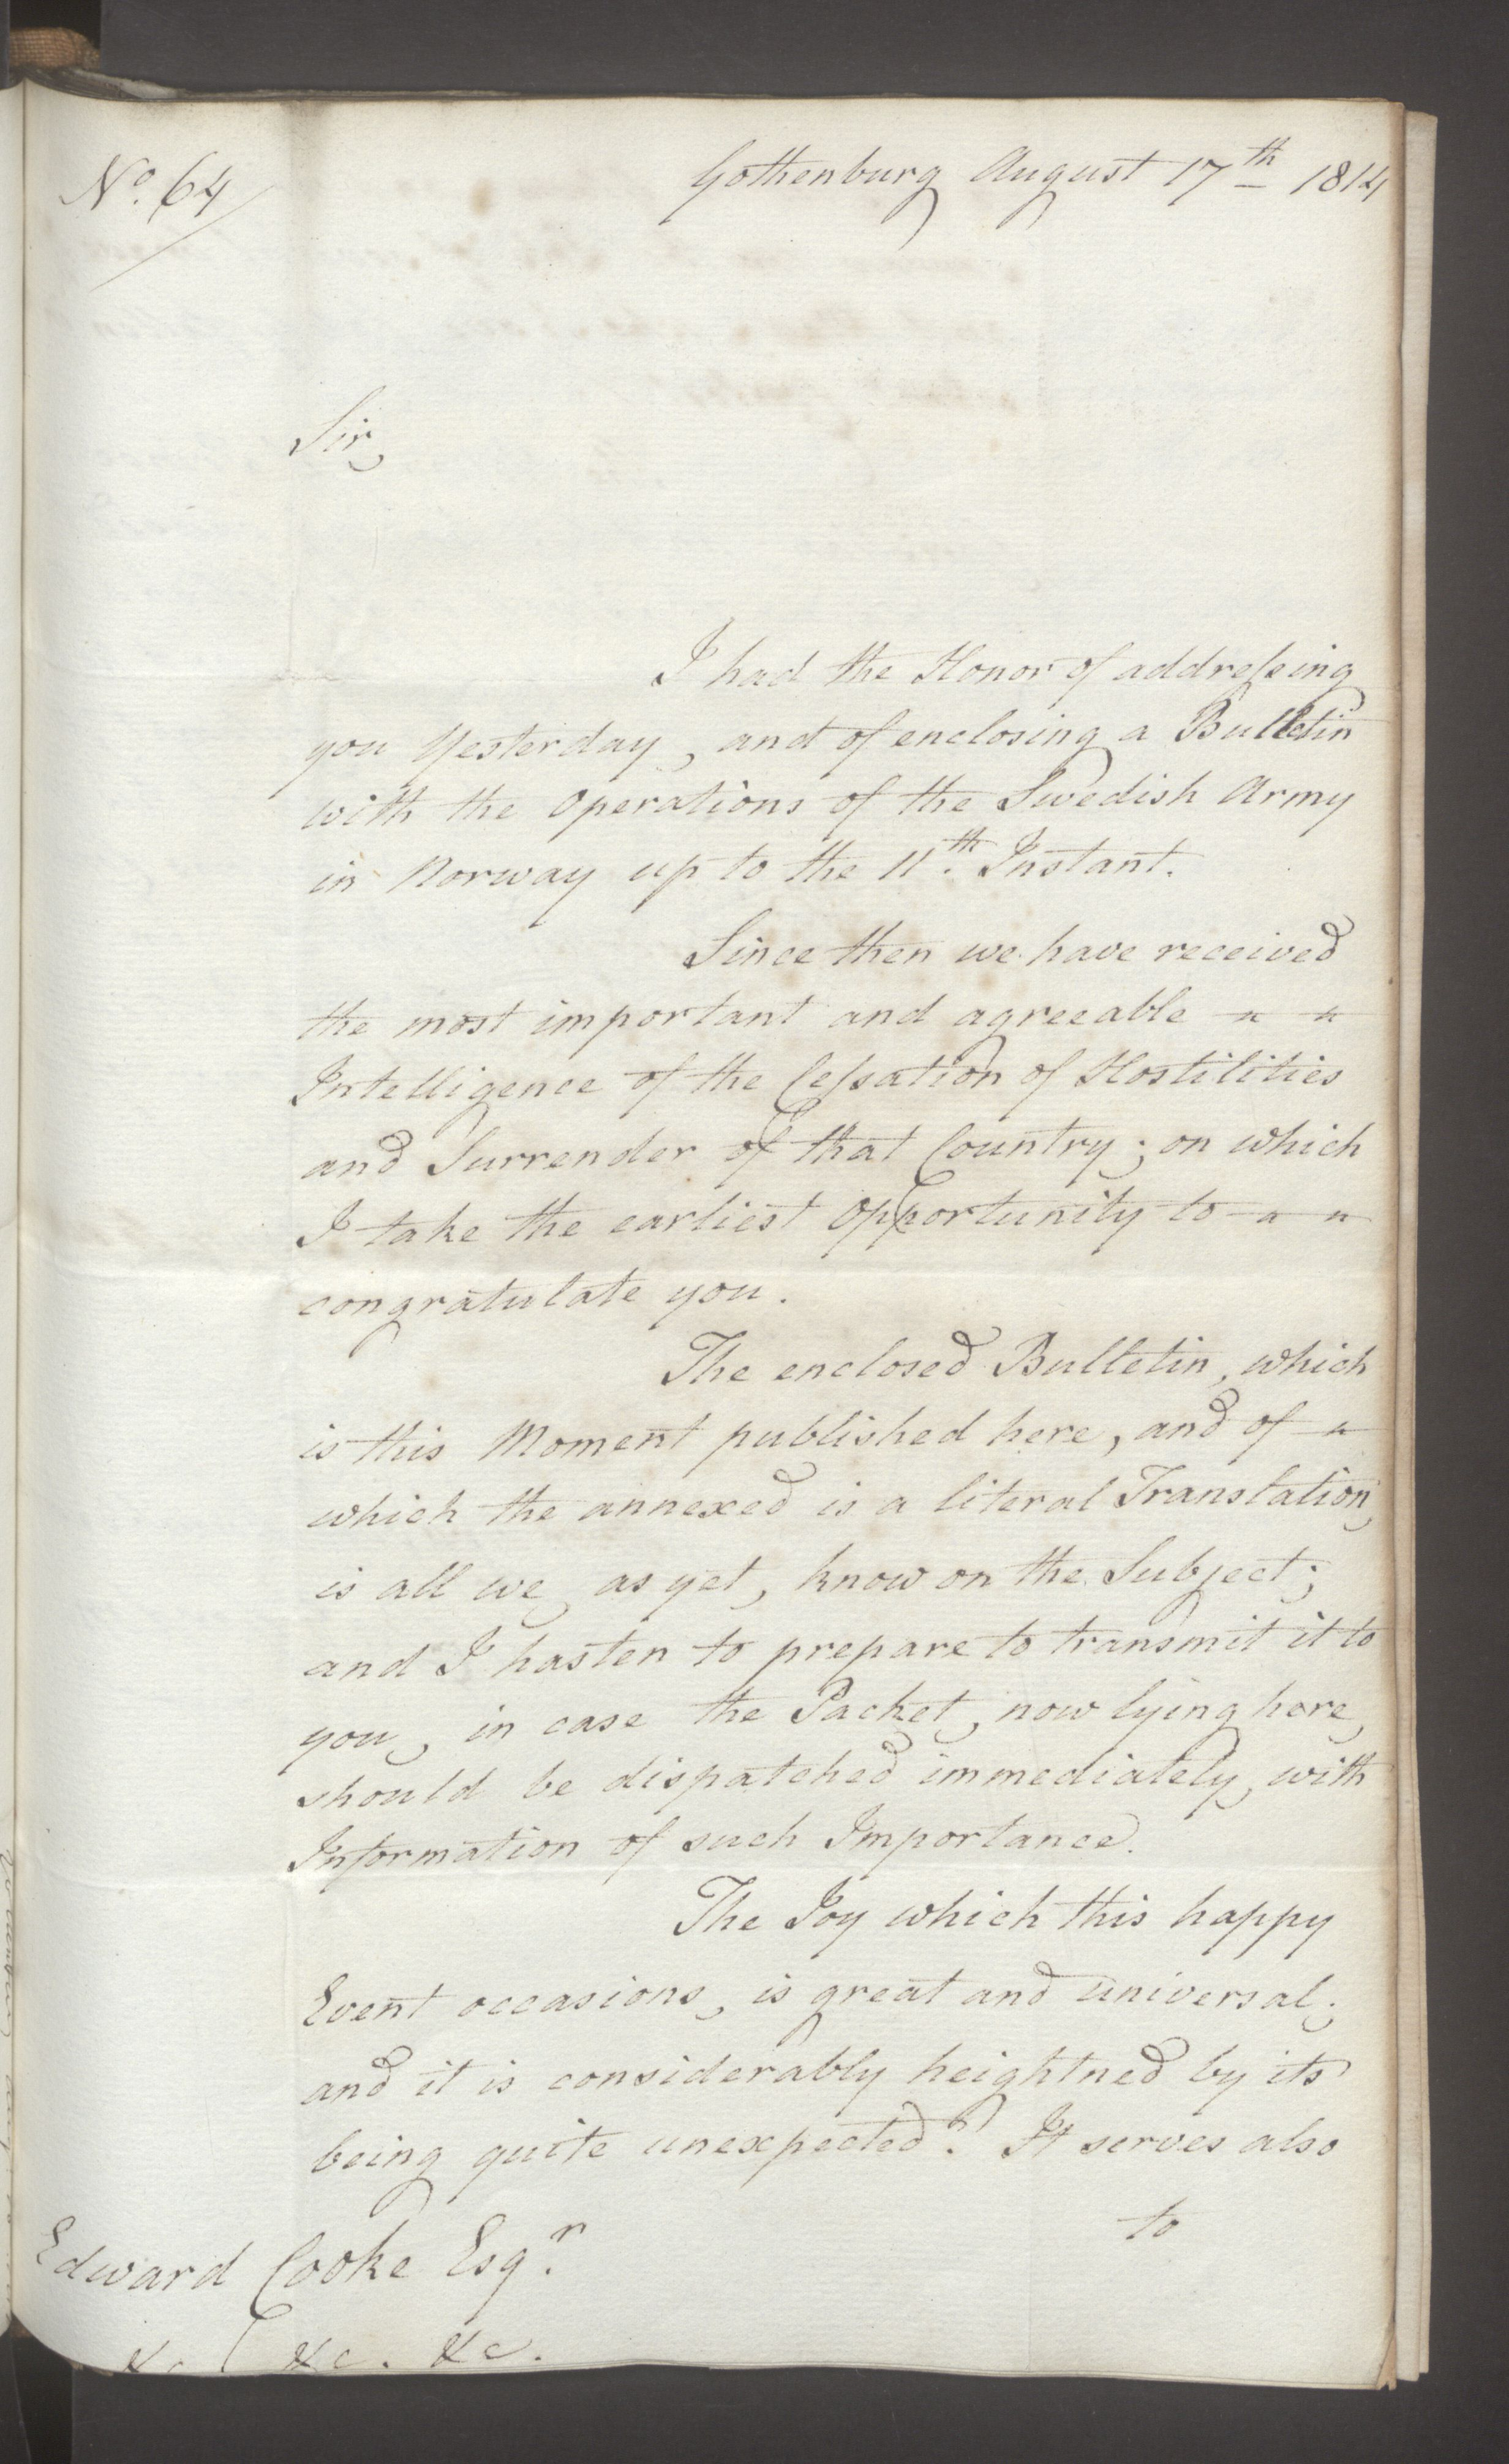 UKA, Foreign Office*, FO 38/16: Sir C. Gordon. Reports from Malmö, Jonkoping, and Helsingborg, 1814, s. 86